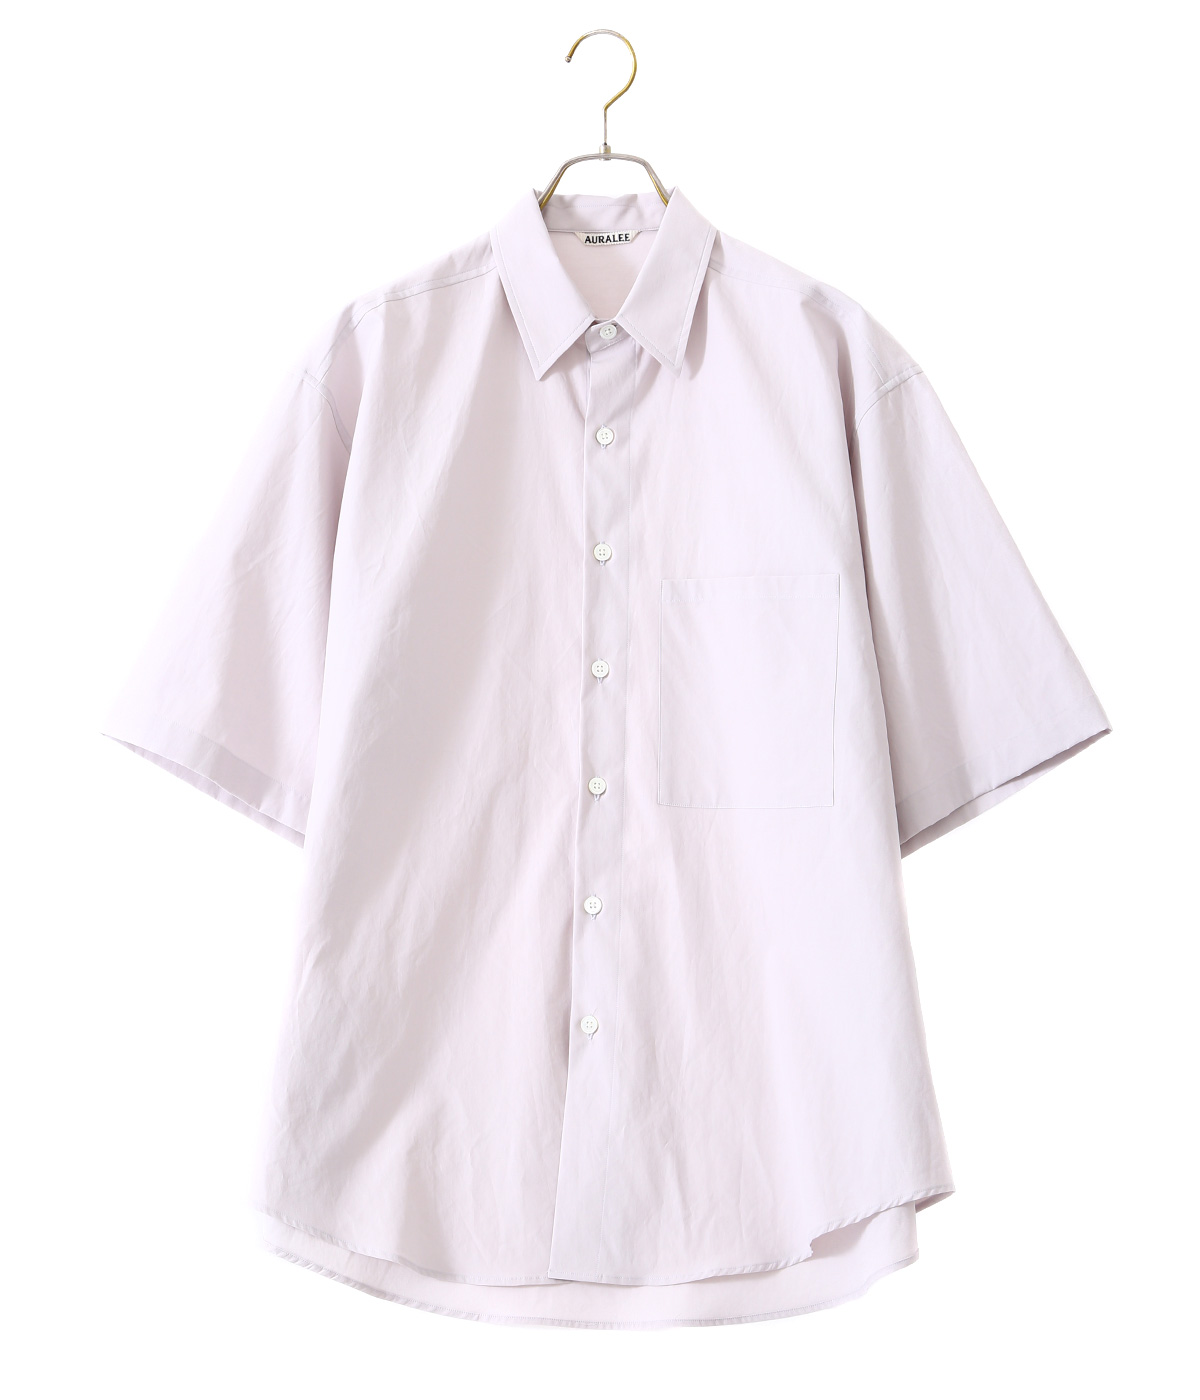 WASHED FINX TWILL HALF SLEEVED BIG SHIRTS